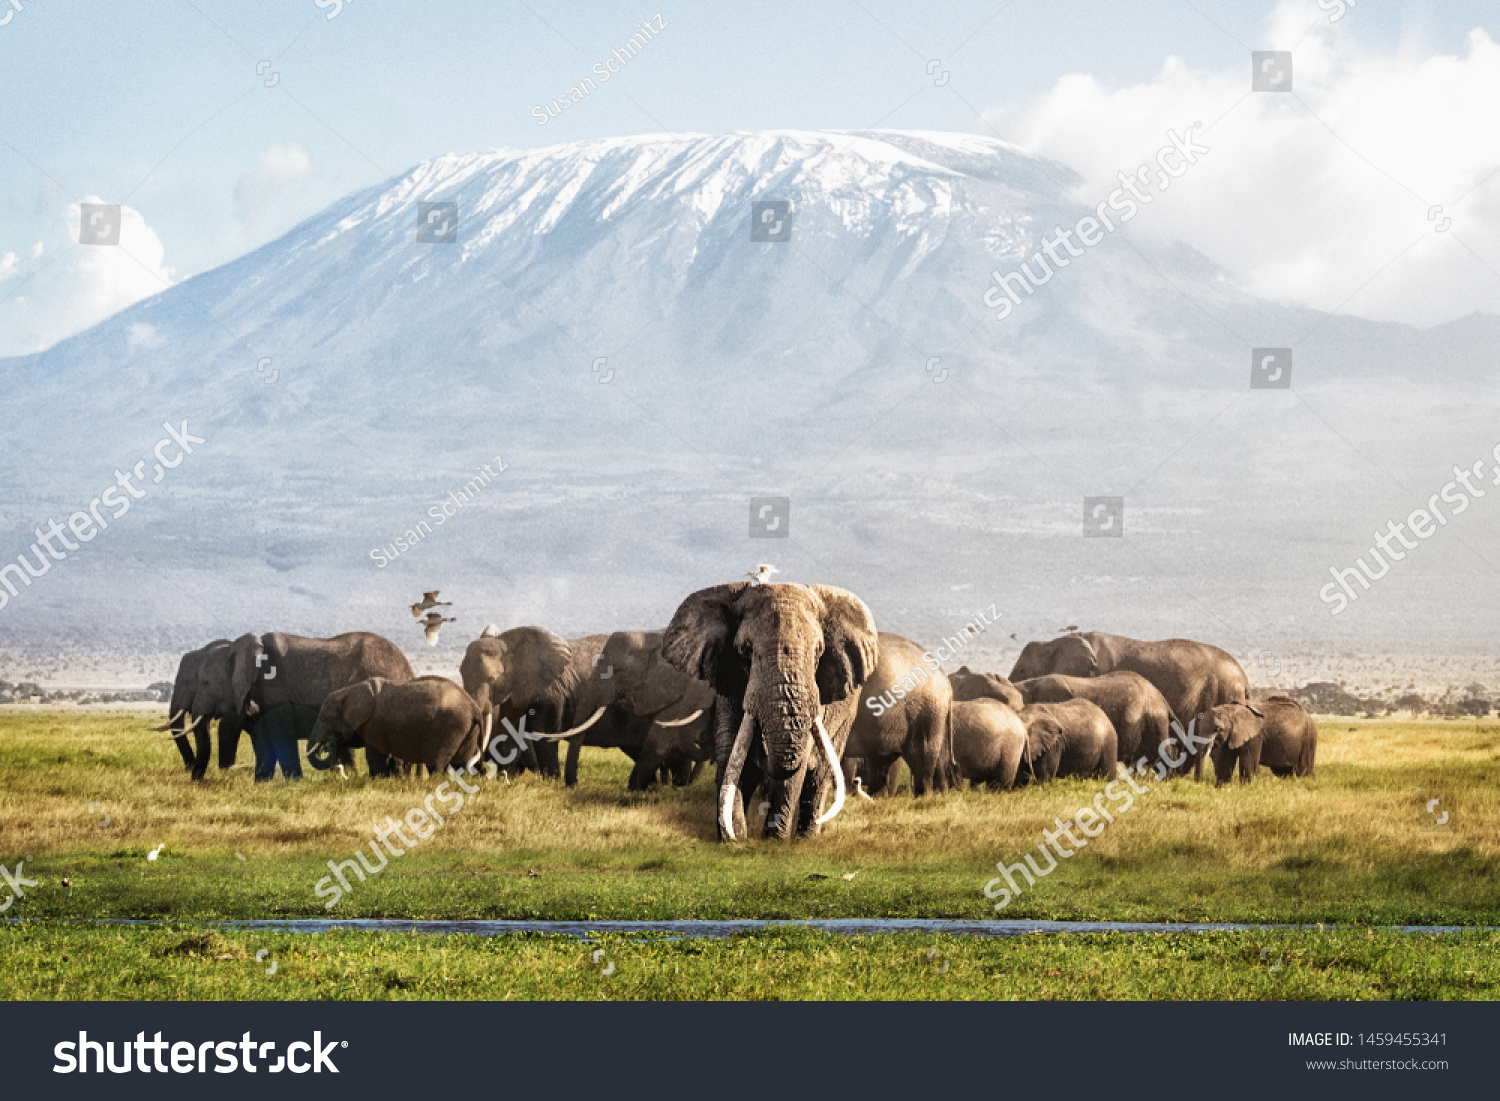 Famous big tusker bull elephant Tim with family herd in front of Mt. Kilimanjaro in Amboseli, Kenya Africa #1459455341